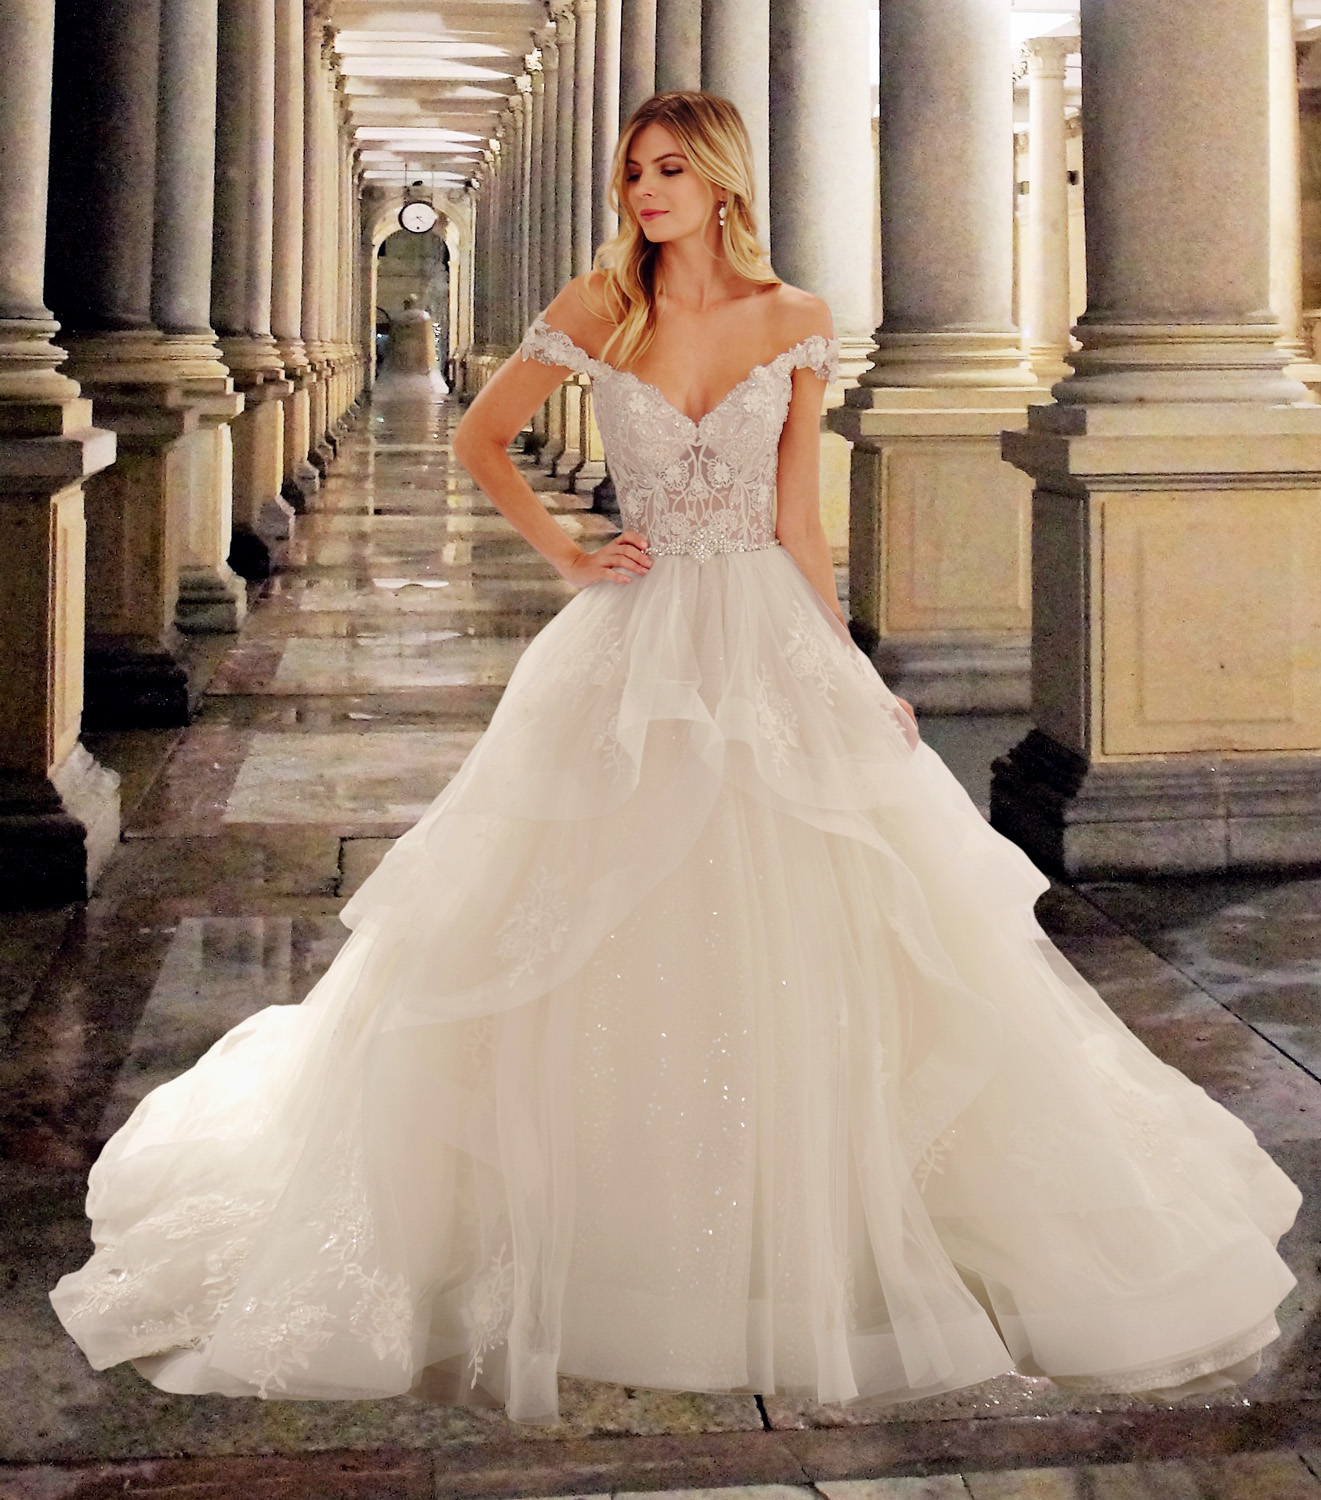 Eve of Milady wedding dress spring 2019 sweetheart off-the shoulder tier ballgown